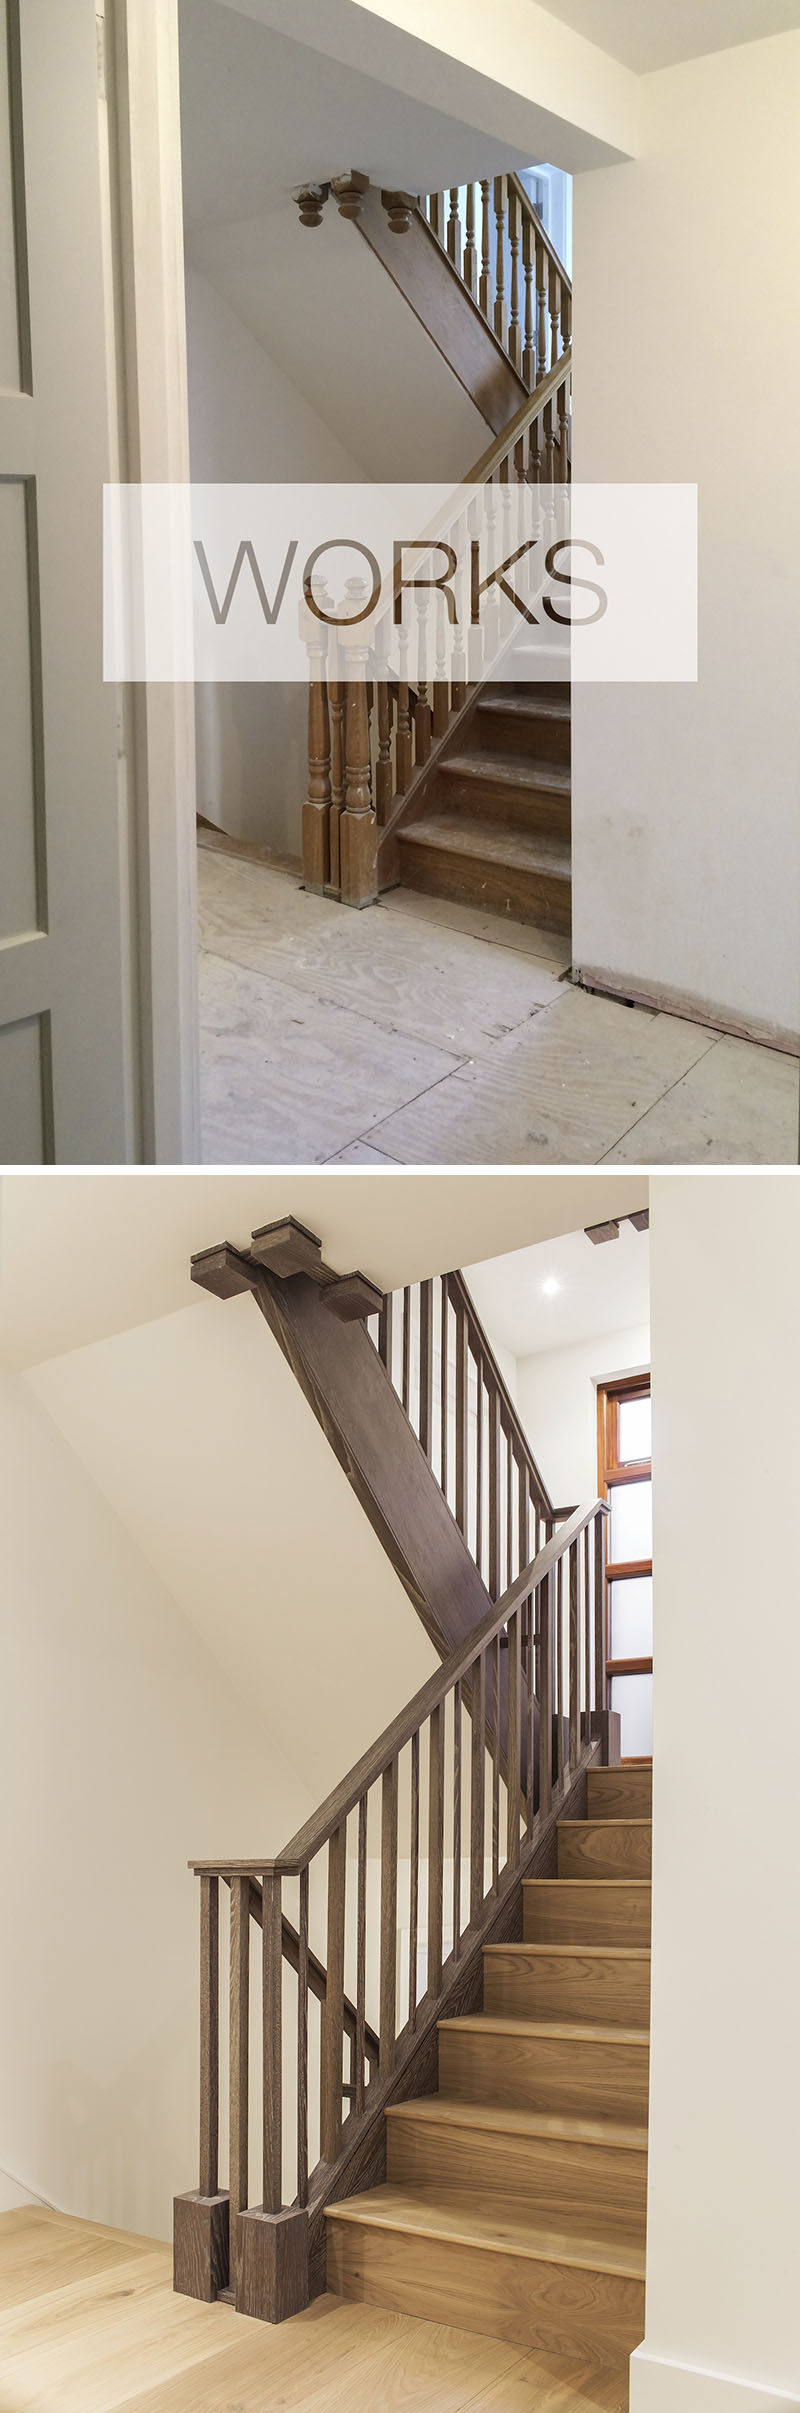 In this contemporary renovation project, the staircase was re-clad in a greyed oak and new spindles, banister rails and newel posts were added. #Stairs #StairDesign #StaircaseRenovation